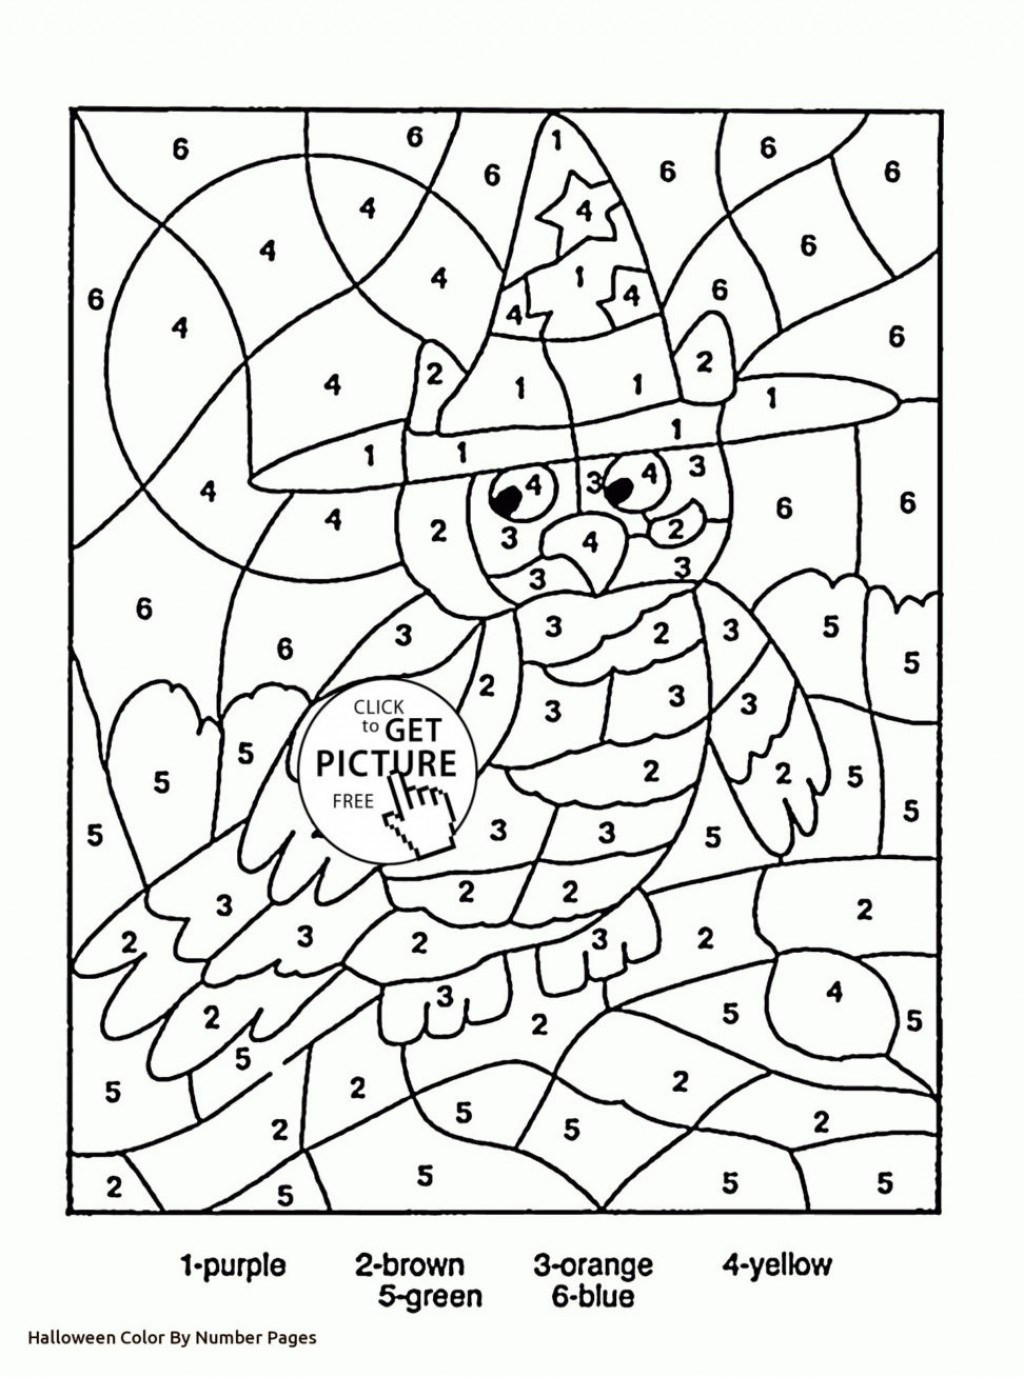 Math Coloring Worksheets 3rd Grade Amazing Math Coloring Worksheets Image Inspirations – Haramiran